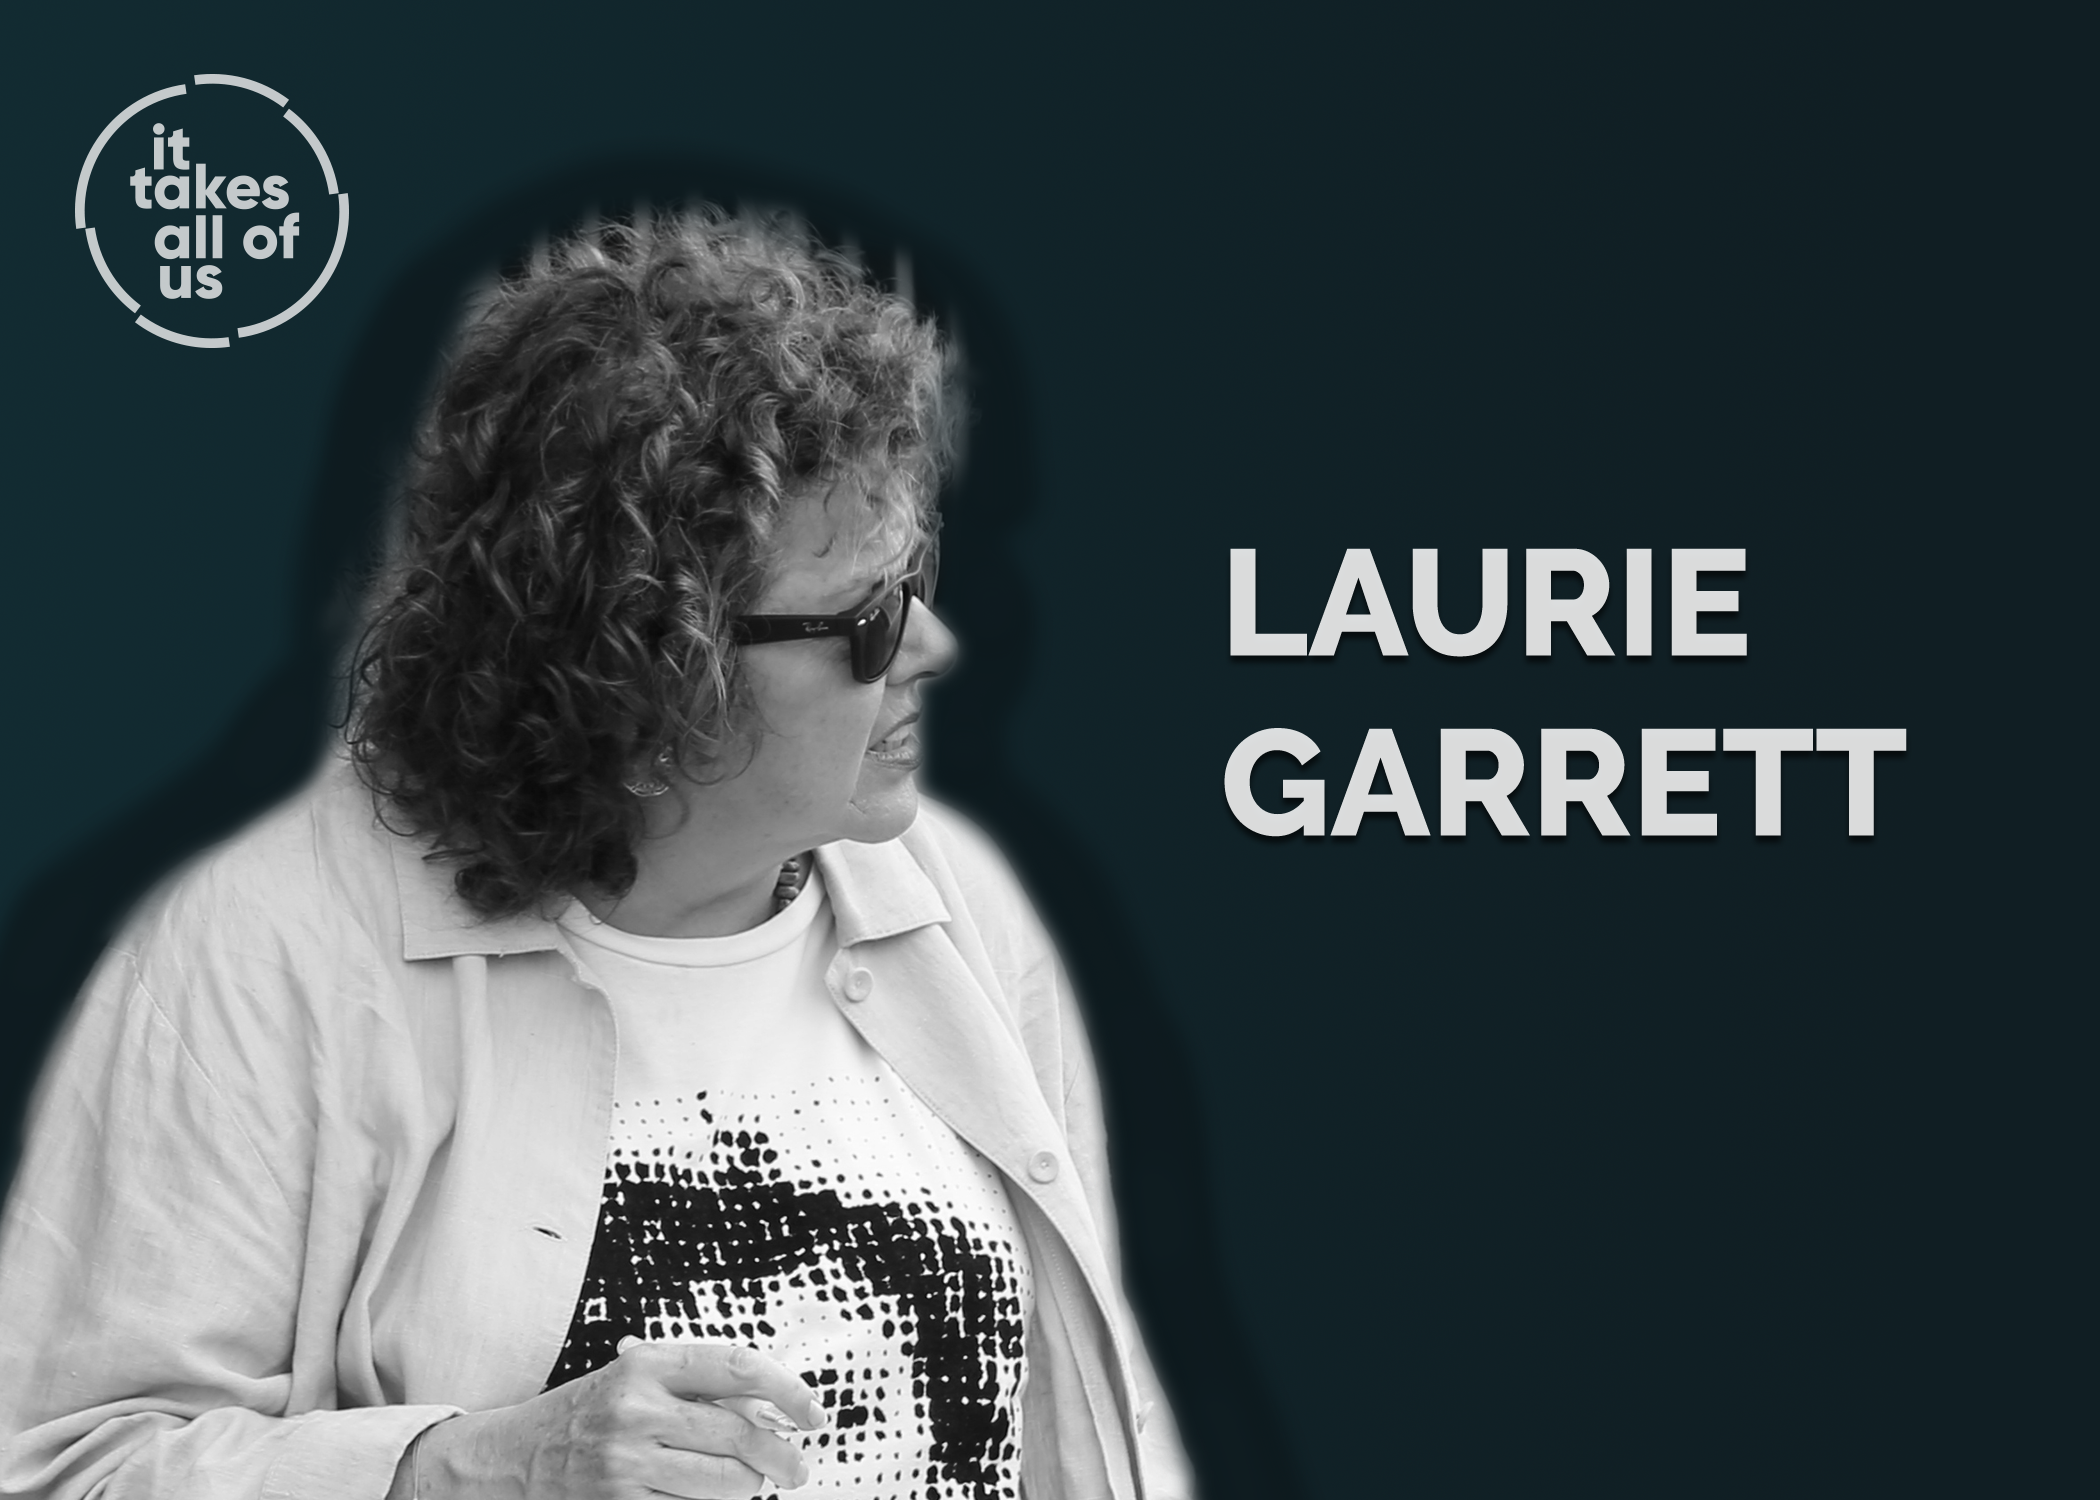 Laurie Garrett is a  Pulitzer prize -winning science journalist and writer of a number of books, including the The Coming Plague and The Betrayal of Trust: The Collapse of Global Health. She was awarded the  Pulitzer Prize for Explanatory Journalism  in 1996 for a series published in  Newsday , chronicling the  Ebola virus  outbreak in  Zaire . Since the 1990s,  Garrett has tracked outbreaks and epidemics worldwide, noting the insufficient responses from global public health institutions in many countries. In 2004, Laurie Garrett left Newsday to join the think tank staff of the  Council on Foreign Relations  in New York. Laurie is a formidable global health voice. Stay tuned for more from her in our AMR initiative.   @Laurie_Garrett